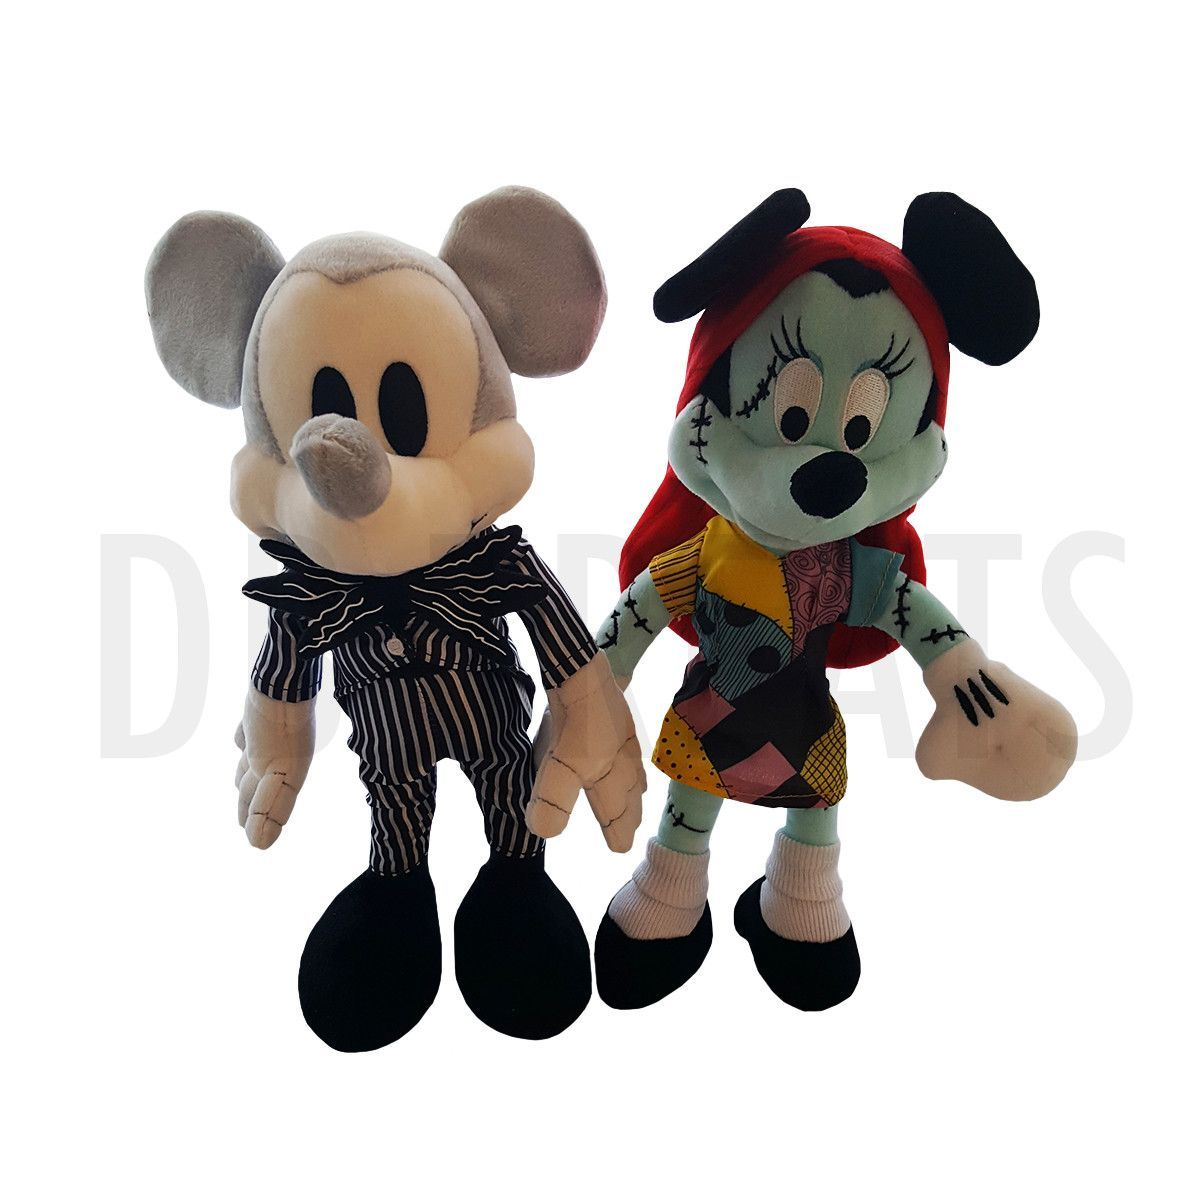 Disney Parks The Nightmare Before Christmas Mickey Mouse Minnie ...